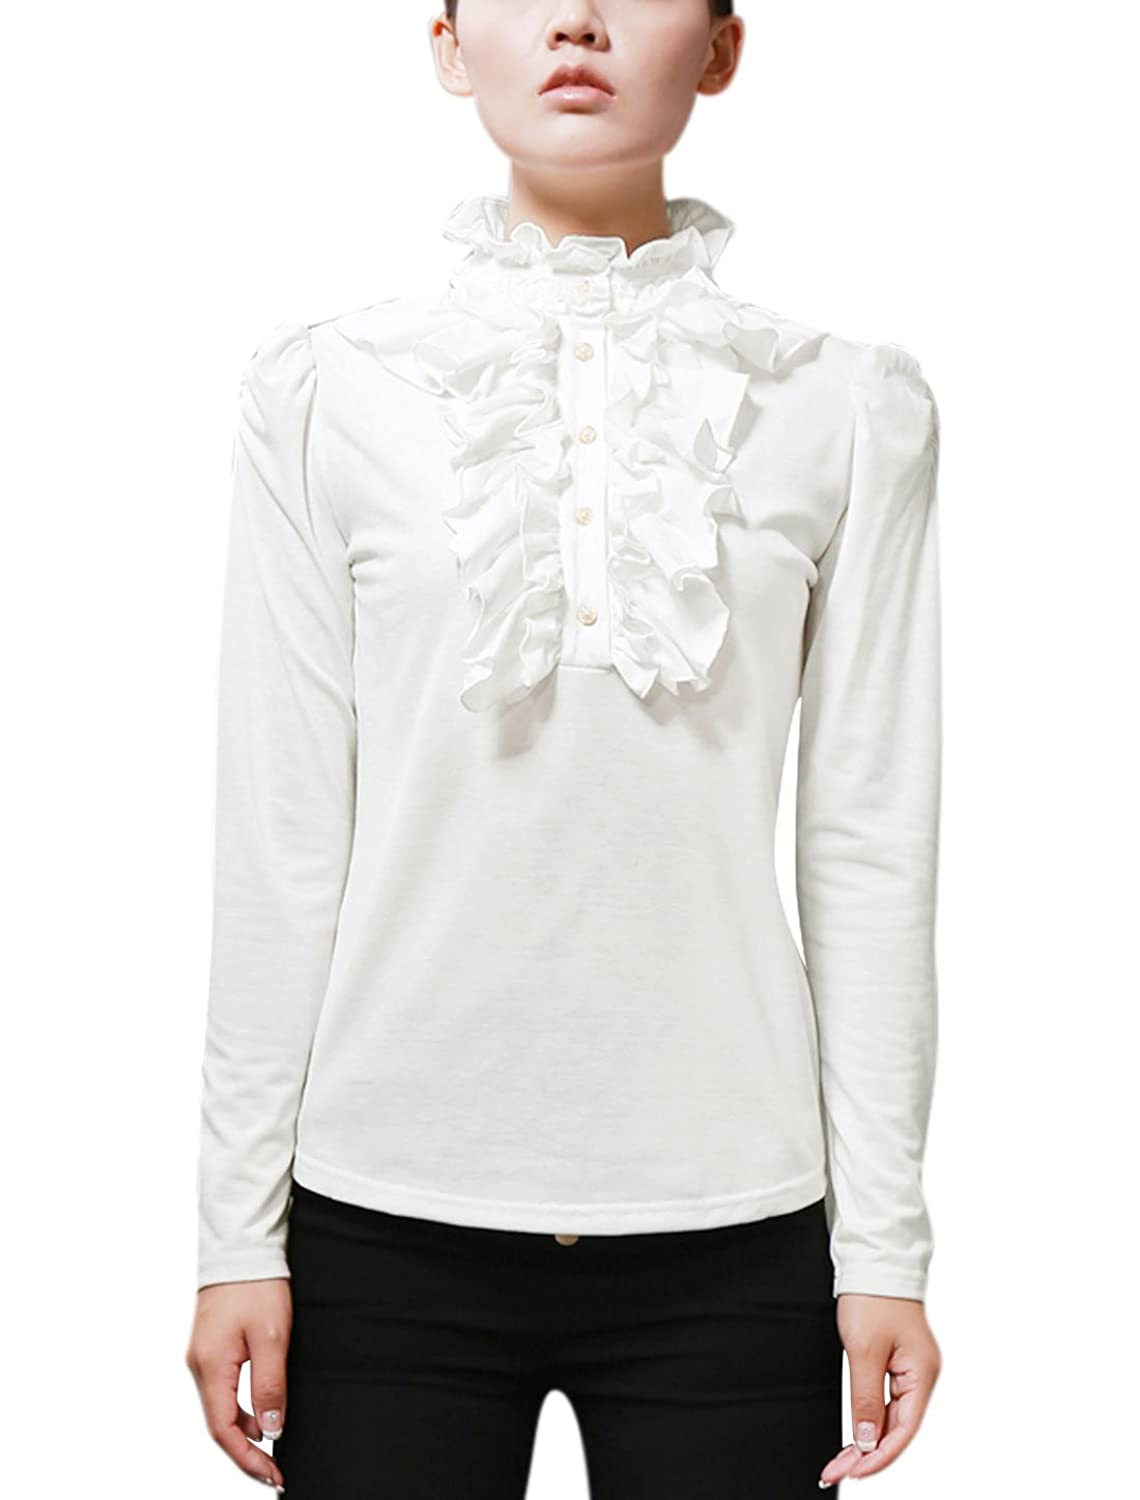 Edwardian Blouses, Ladies White & Black Lace Blouses Ruffle Neck Blouse Half Placket Stand Collar Puff Sleeve Shirts  AT vintagedancer.com